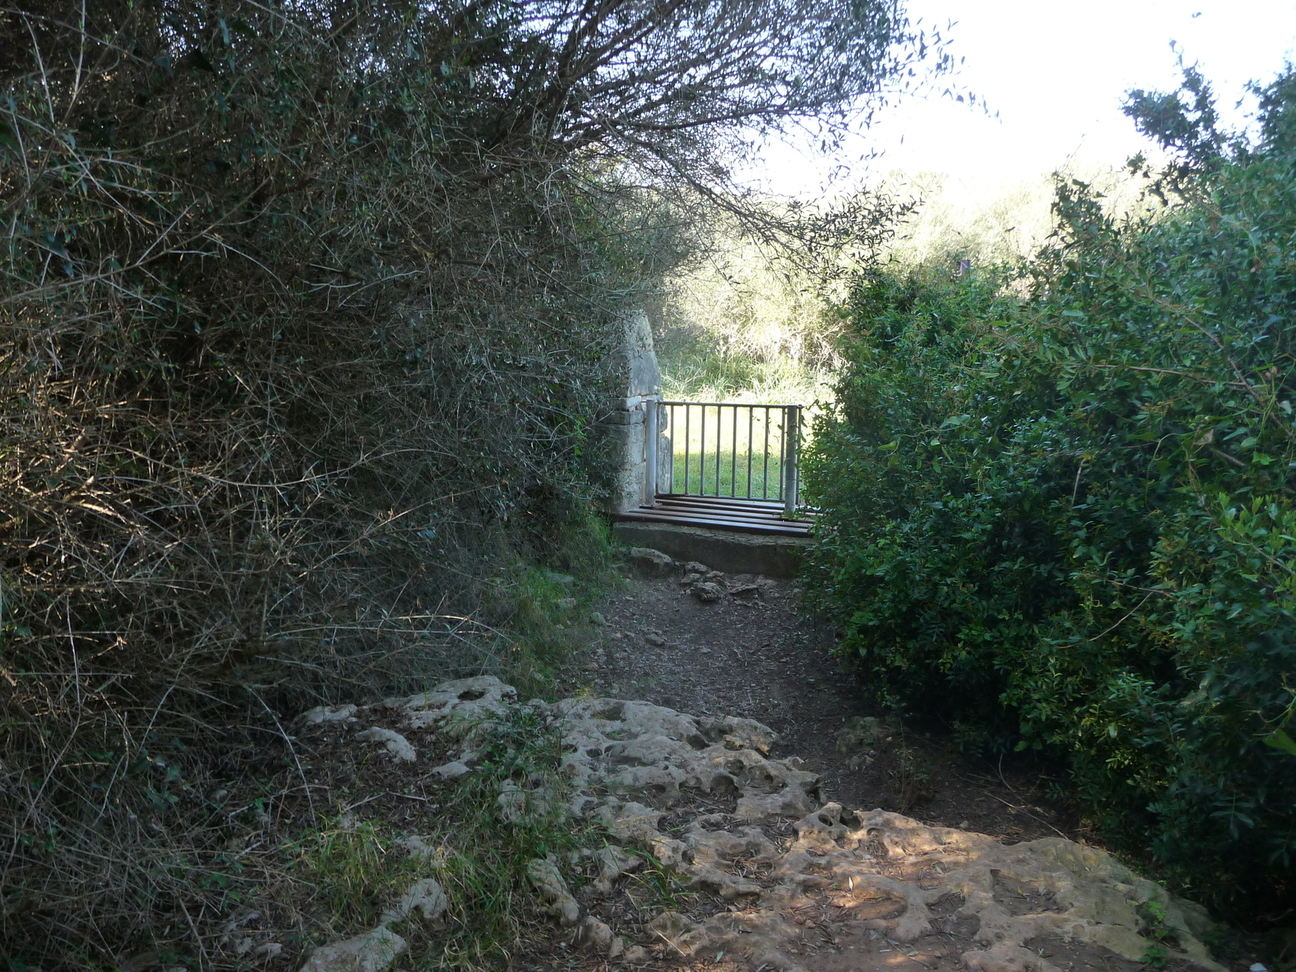 Intermediate fence in the trail to the Torretrencada village